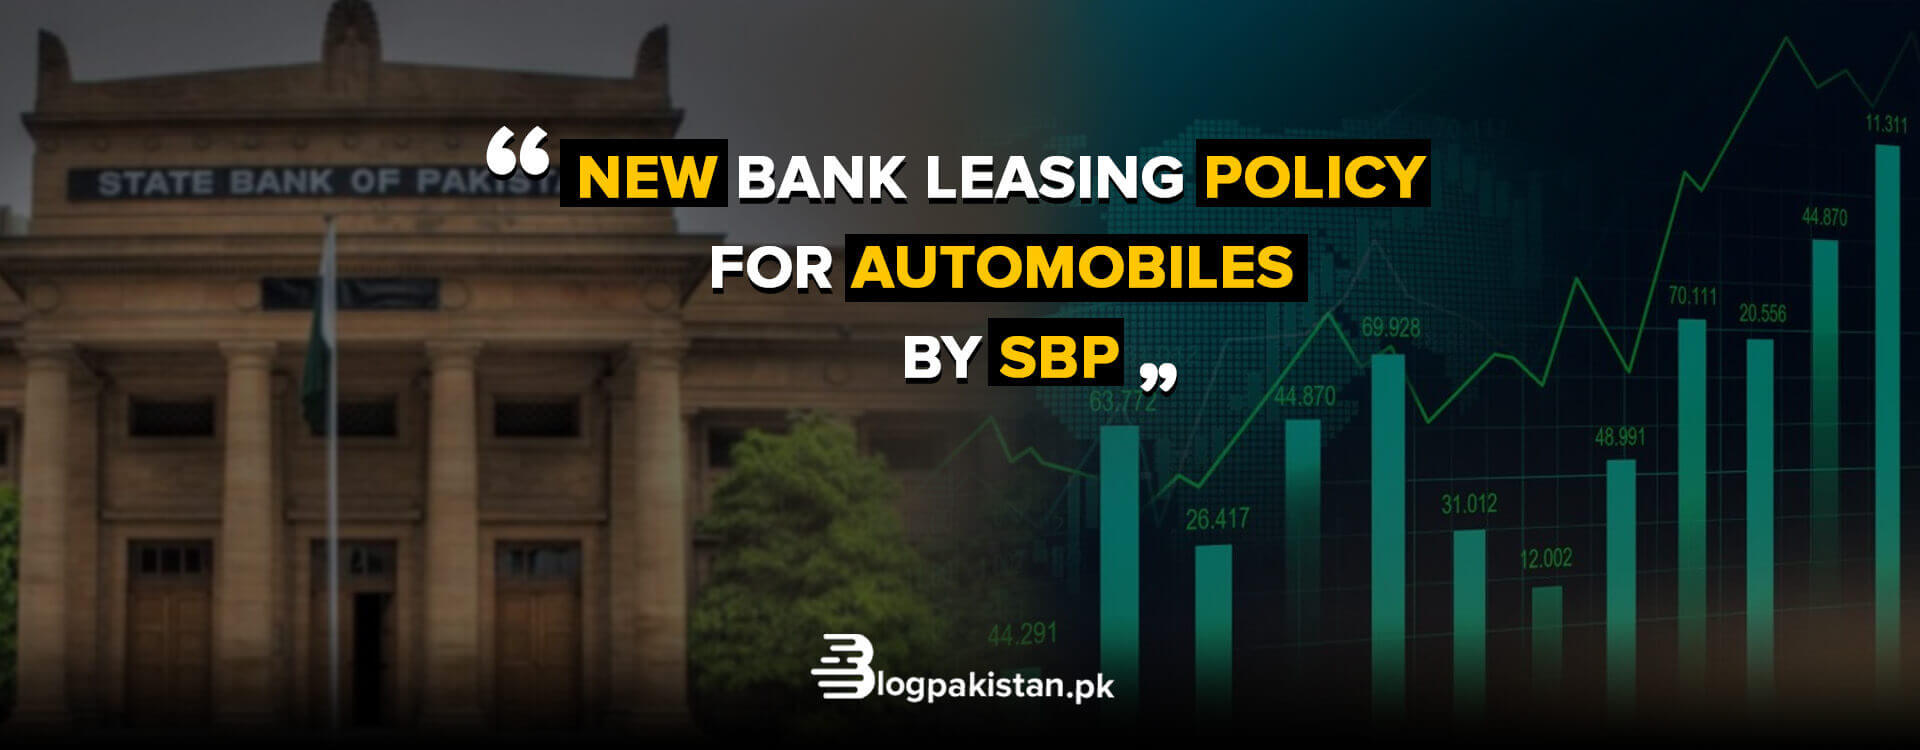 leasing policy for automobiles by SBP